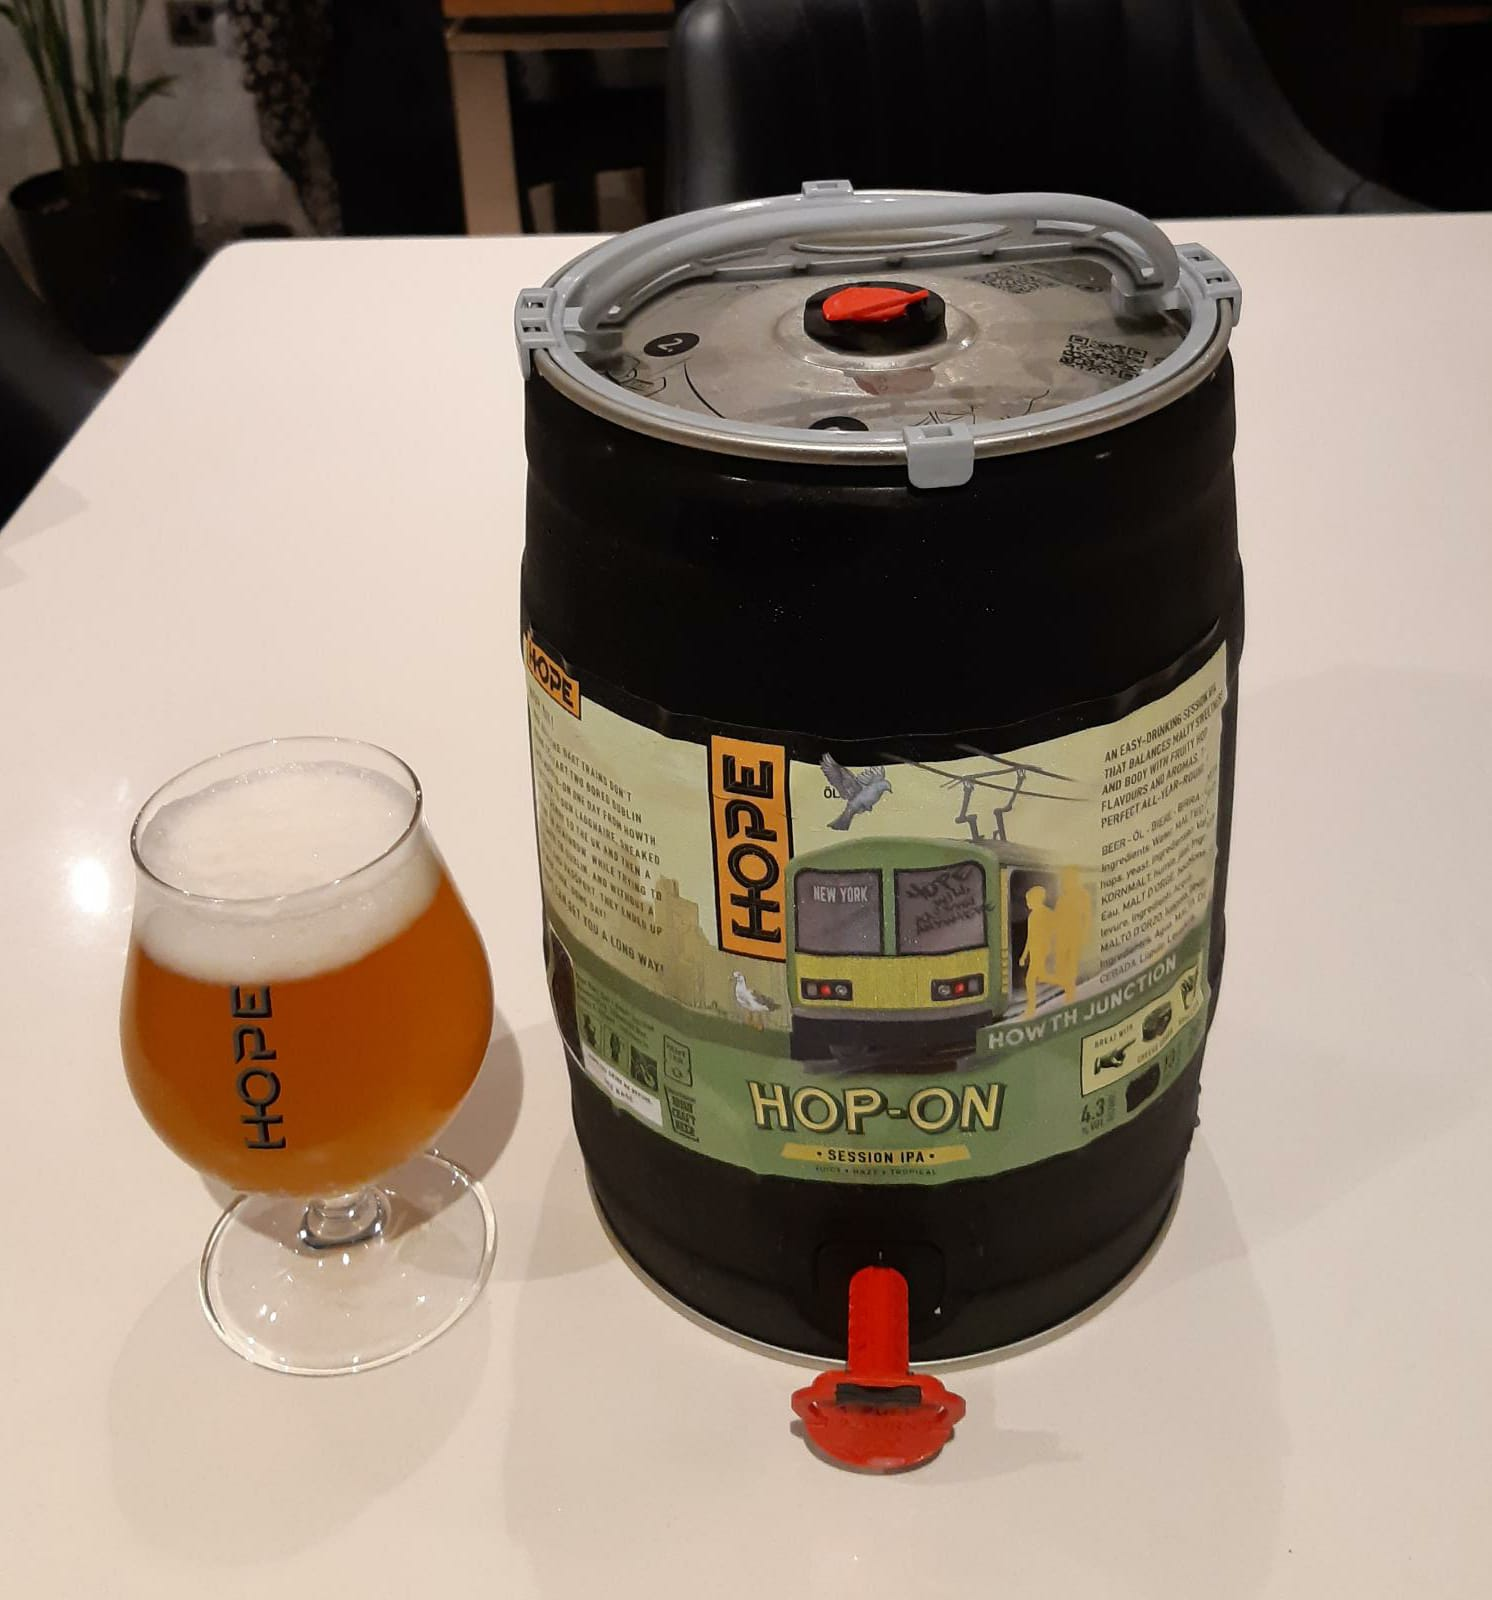 Hope Beer Hop-On Session IPA 4.6% ABV 5 Litre Mini Keg